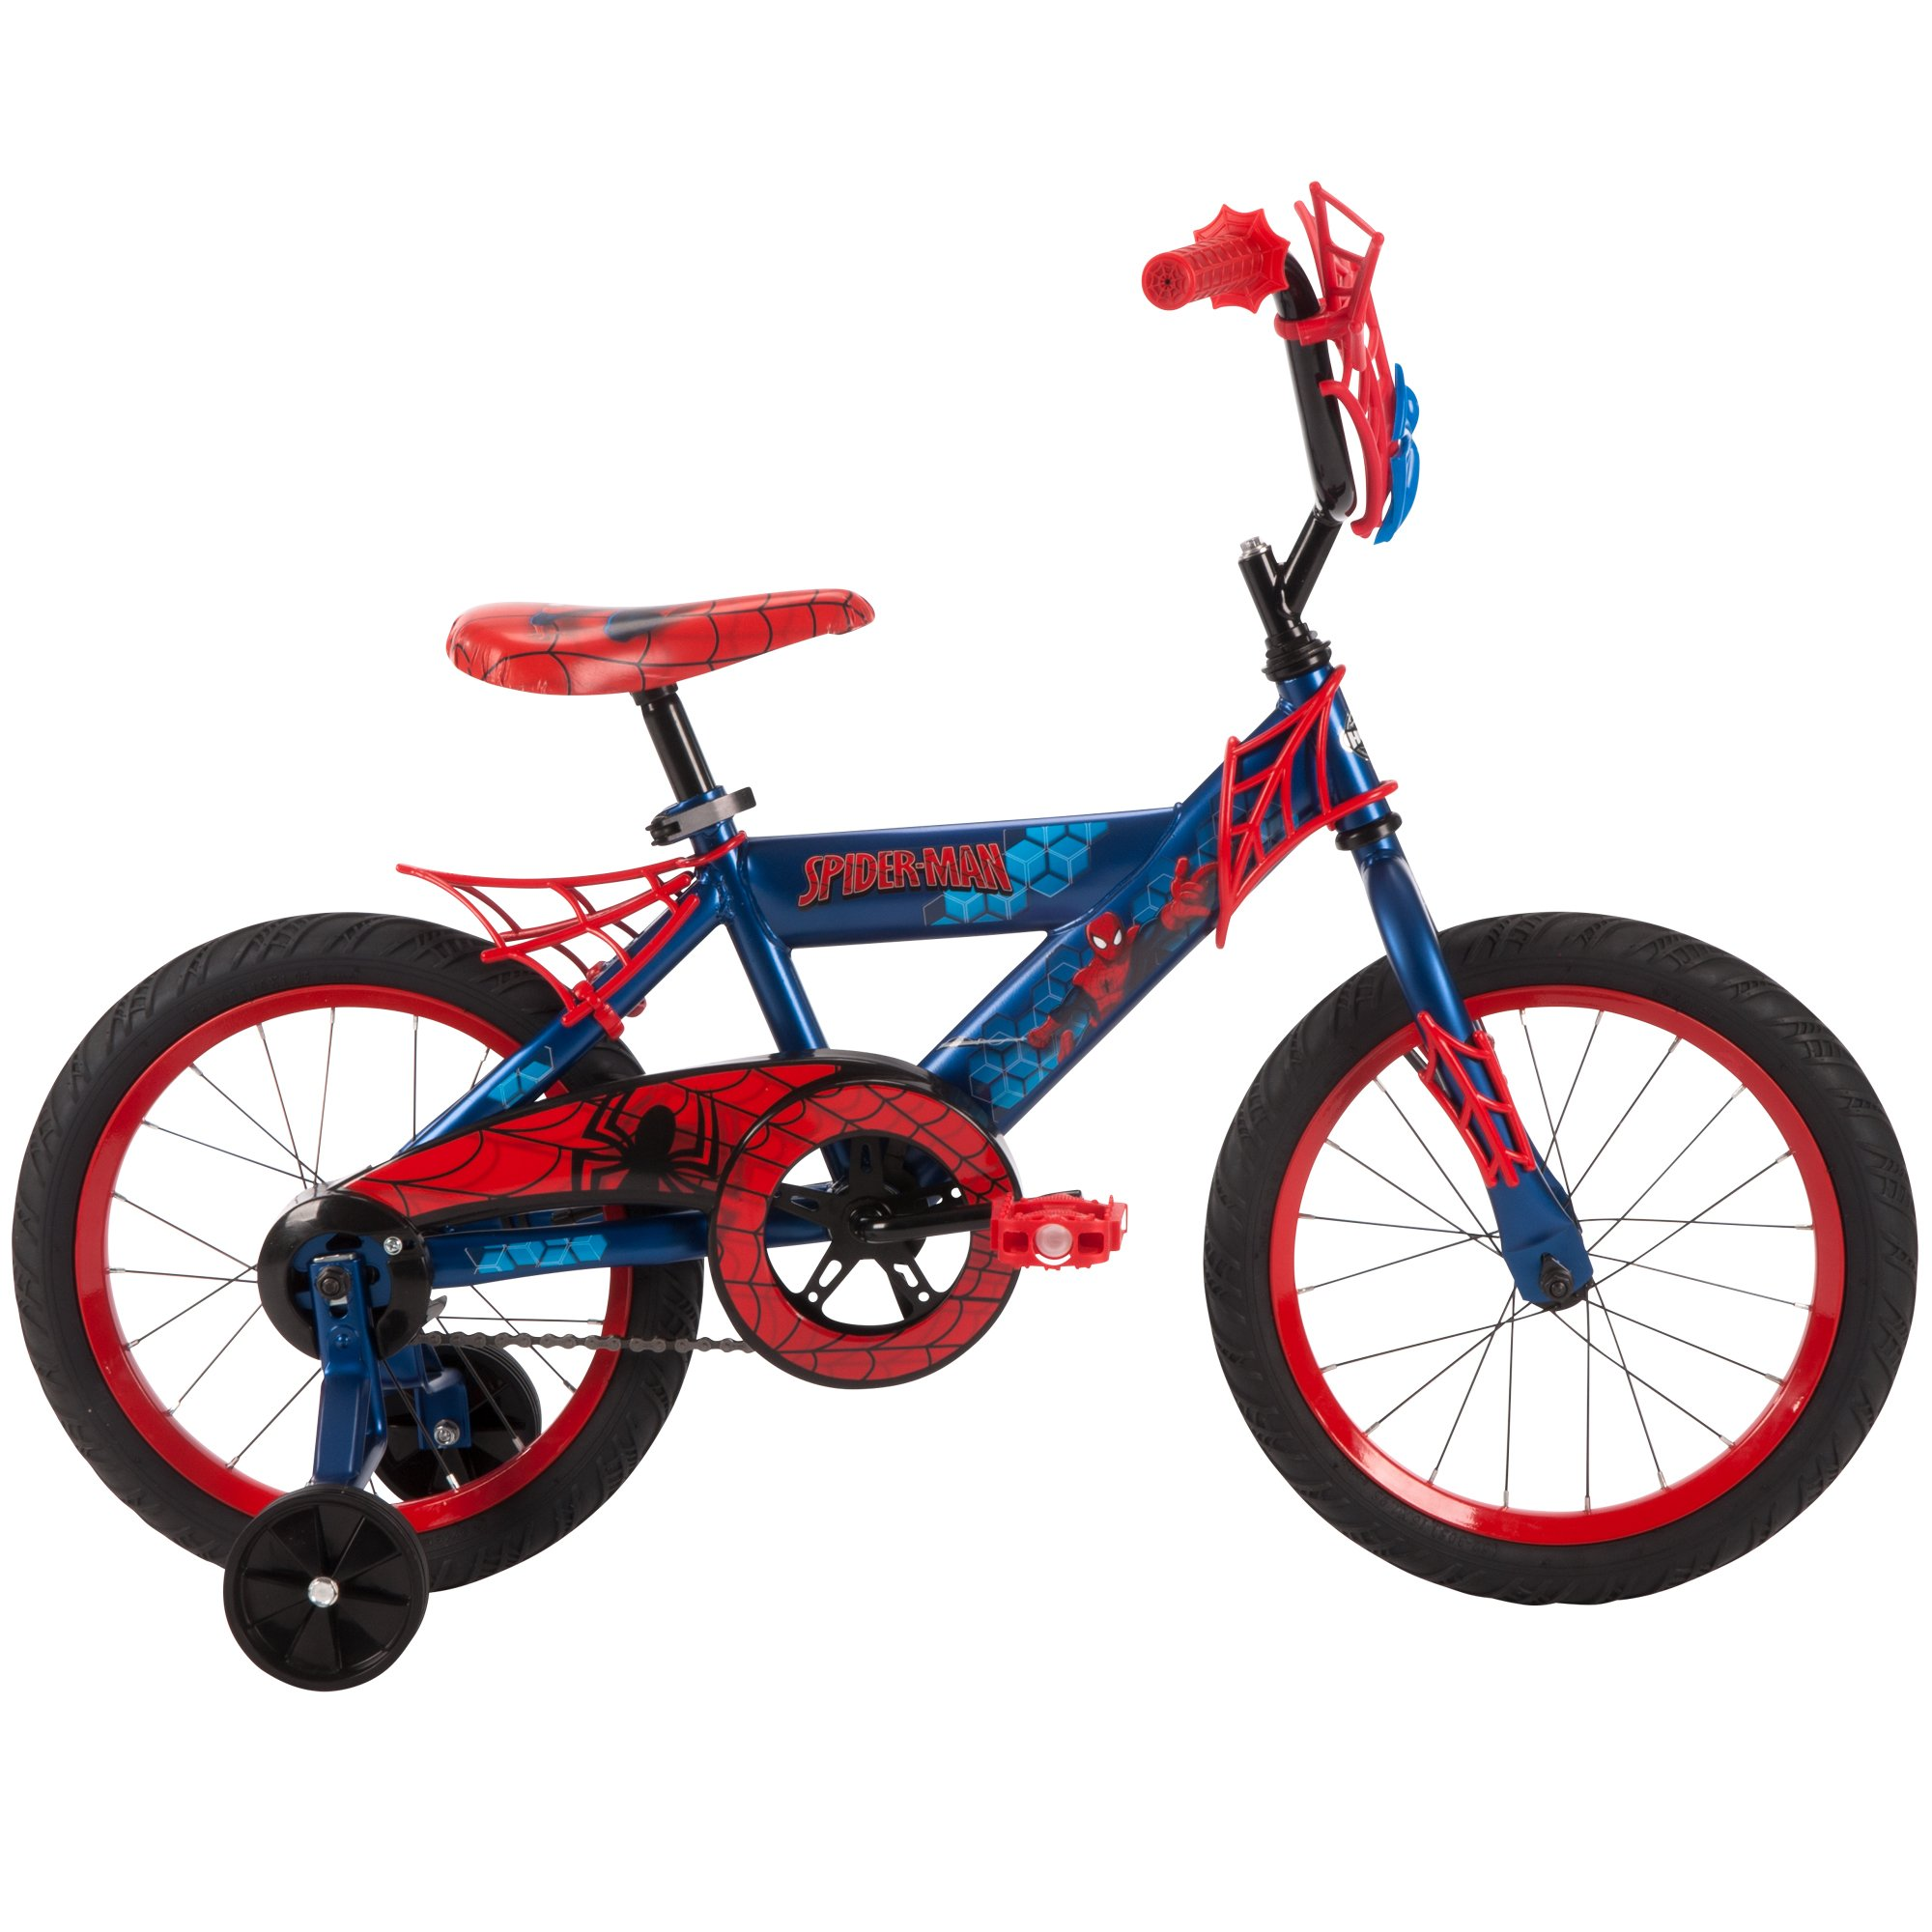 16'' Marvel Spider-Man Bike by Huffy, Ages 4-6, Height 42-48'' by Huffy (Image #8)